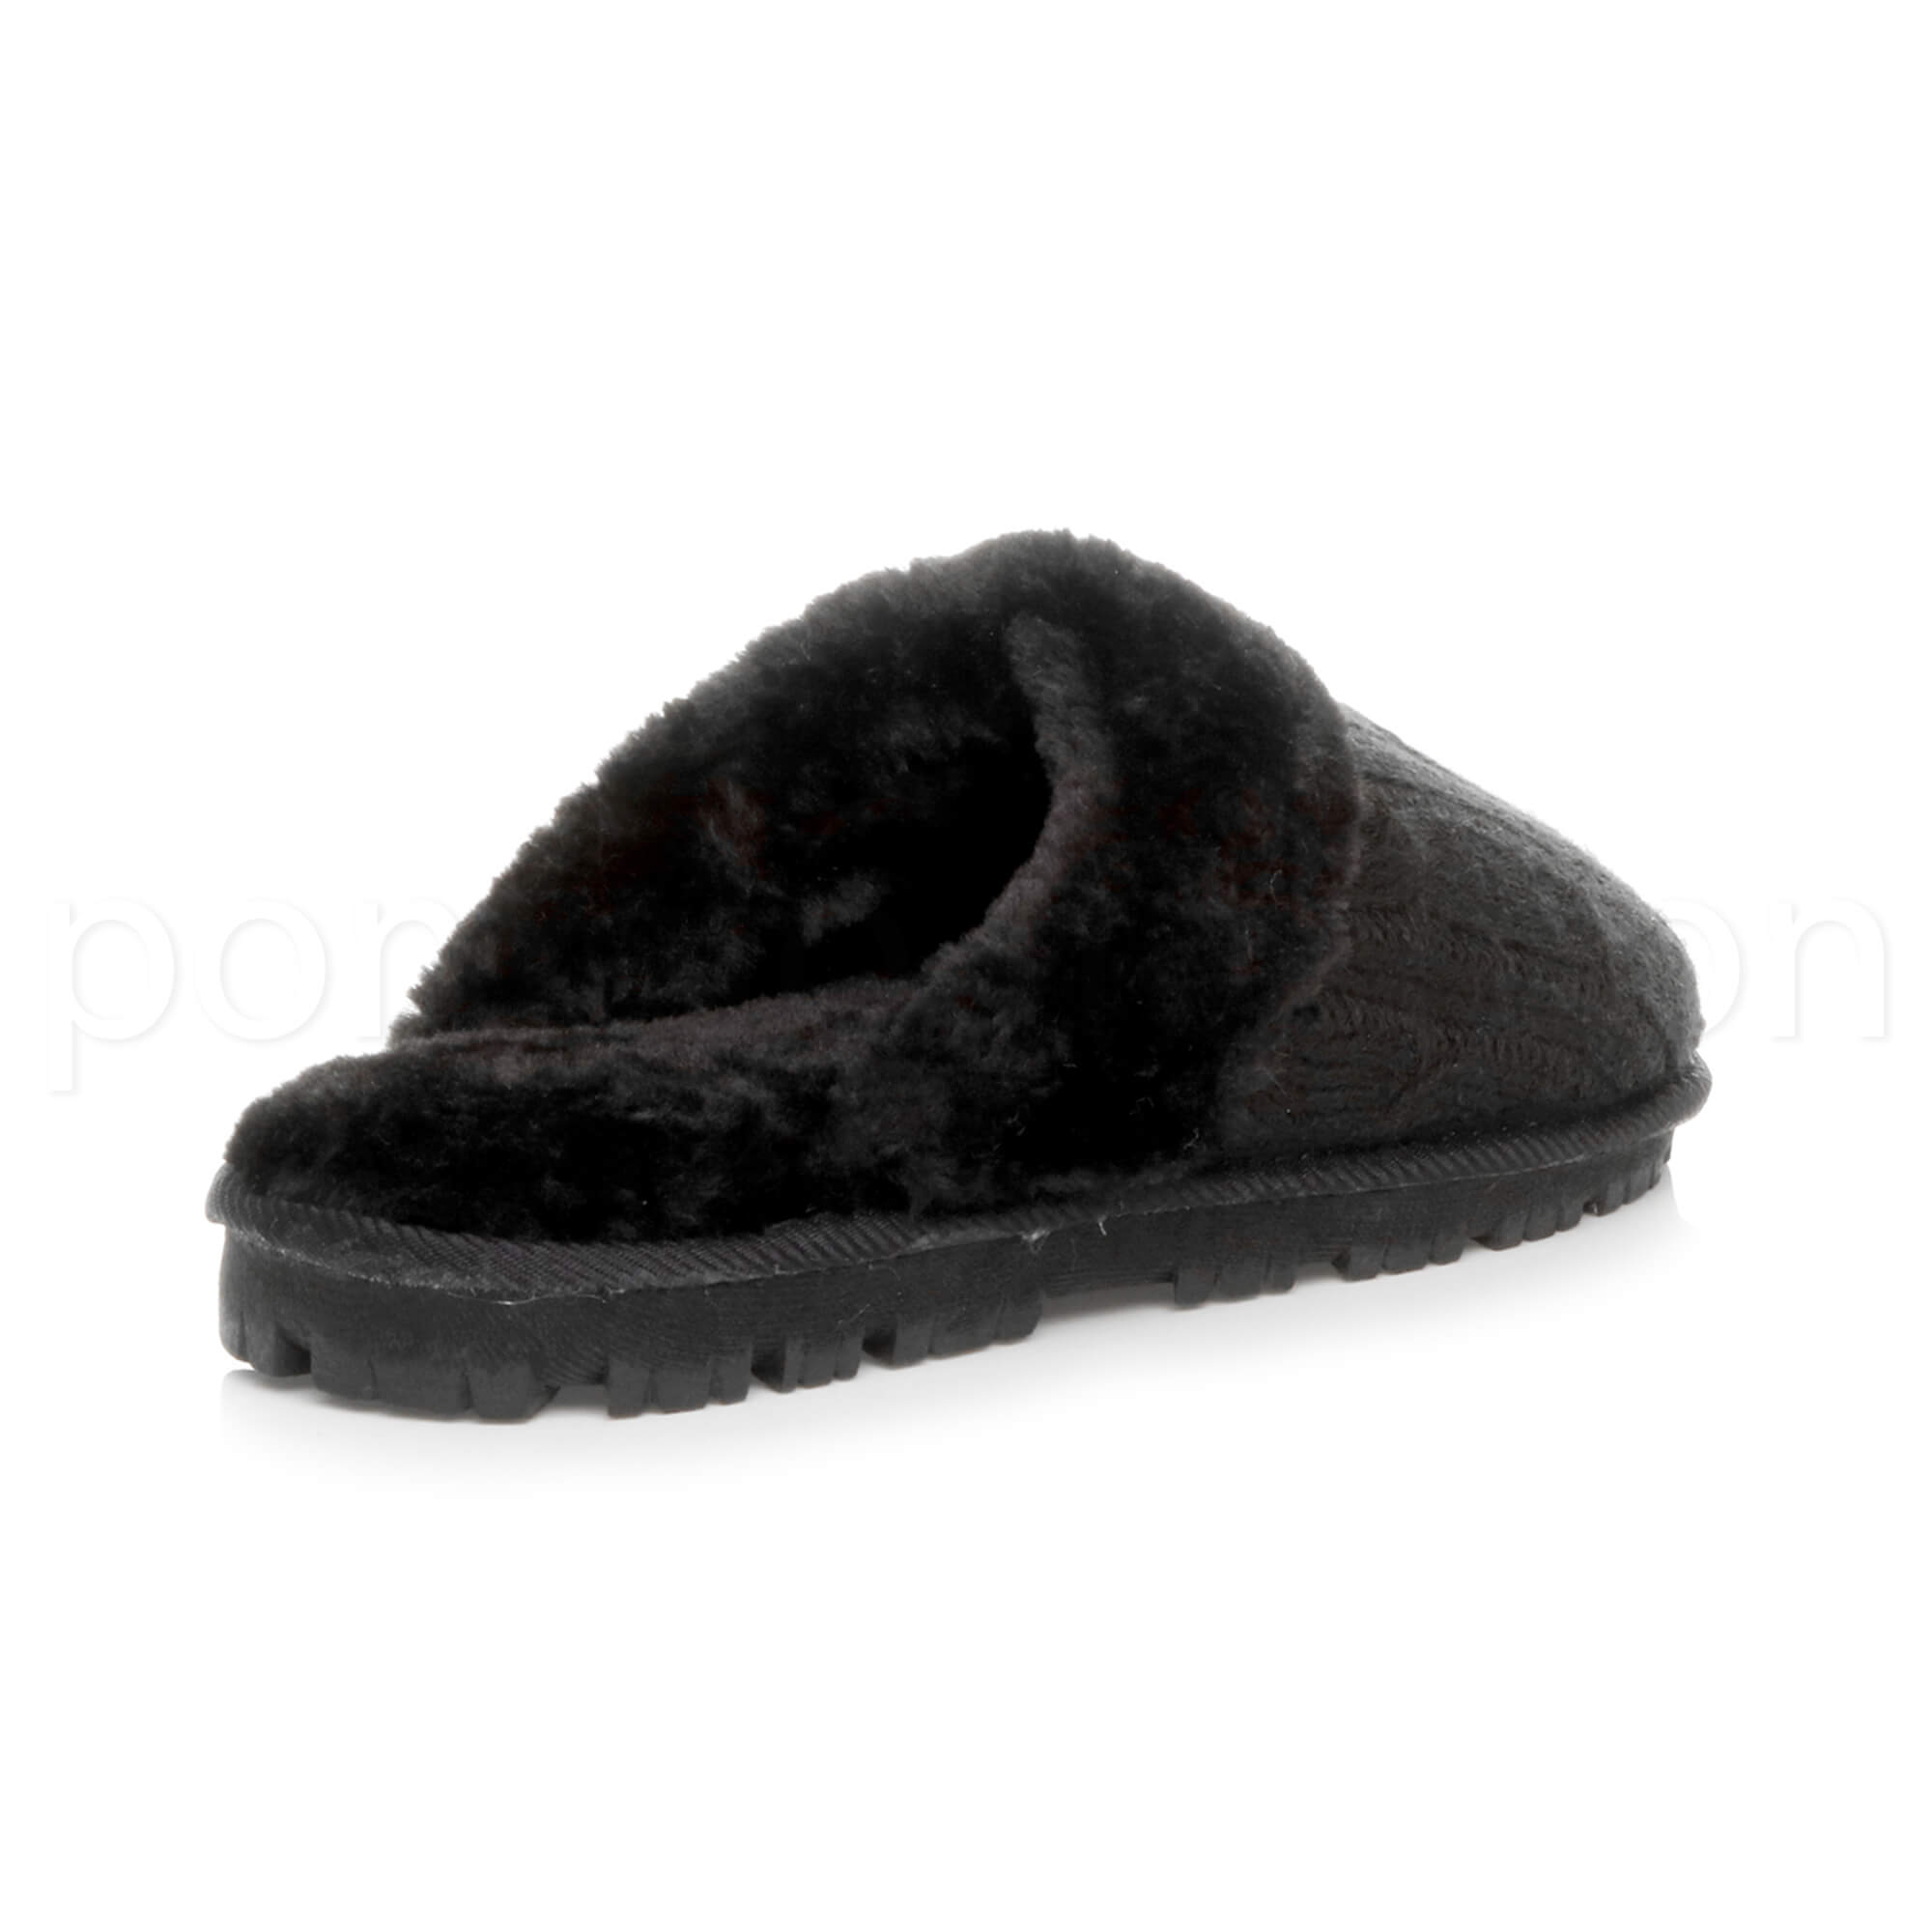 WOMENS-LADIES-FLAT-FUR-LINED-COMFORTABLE-WINTER-MULES-SLIPPERS-HOUSE-SHOES-SIZE thumbnail 33